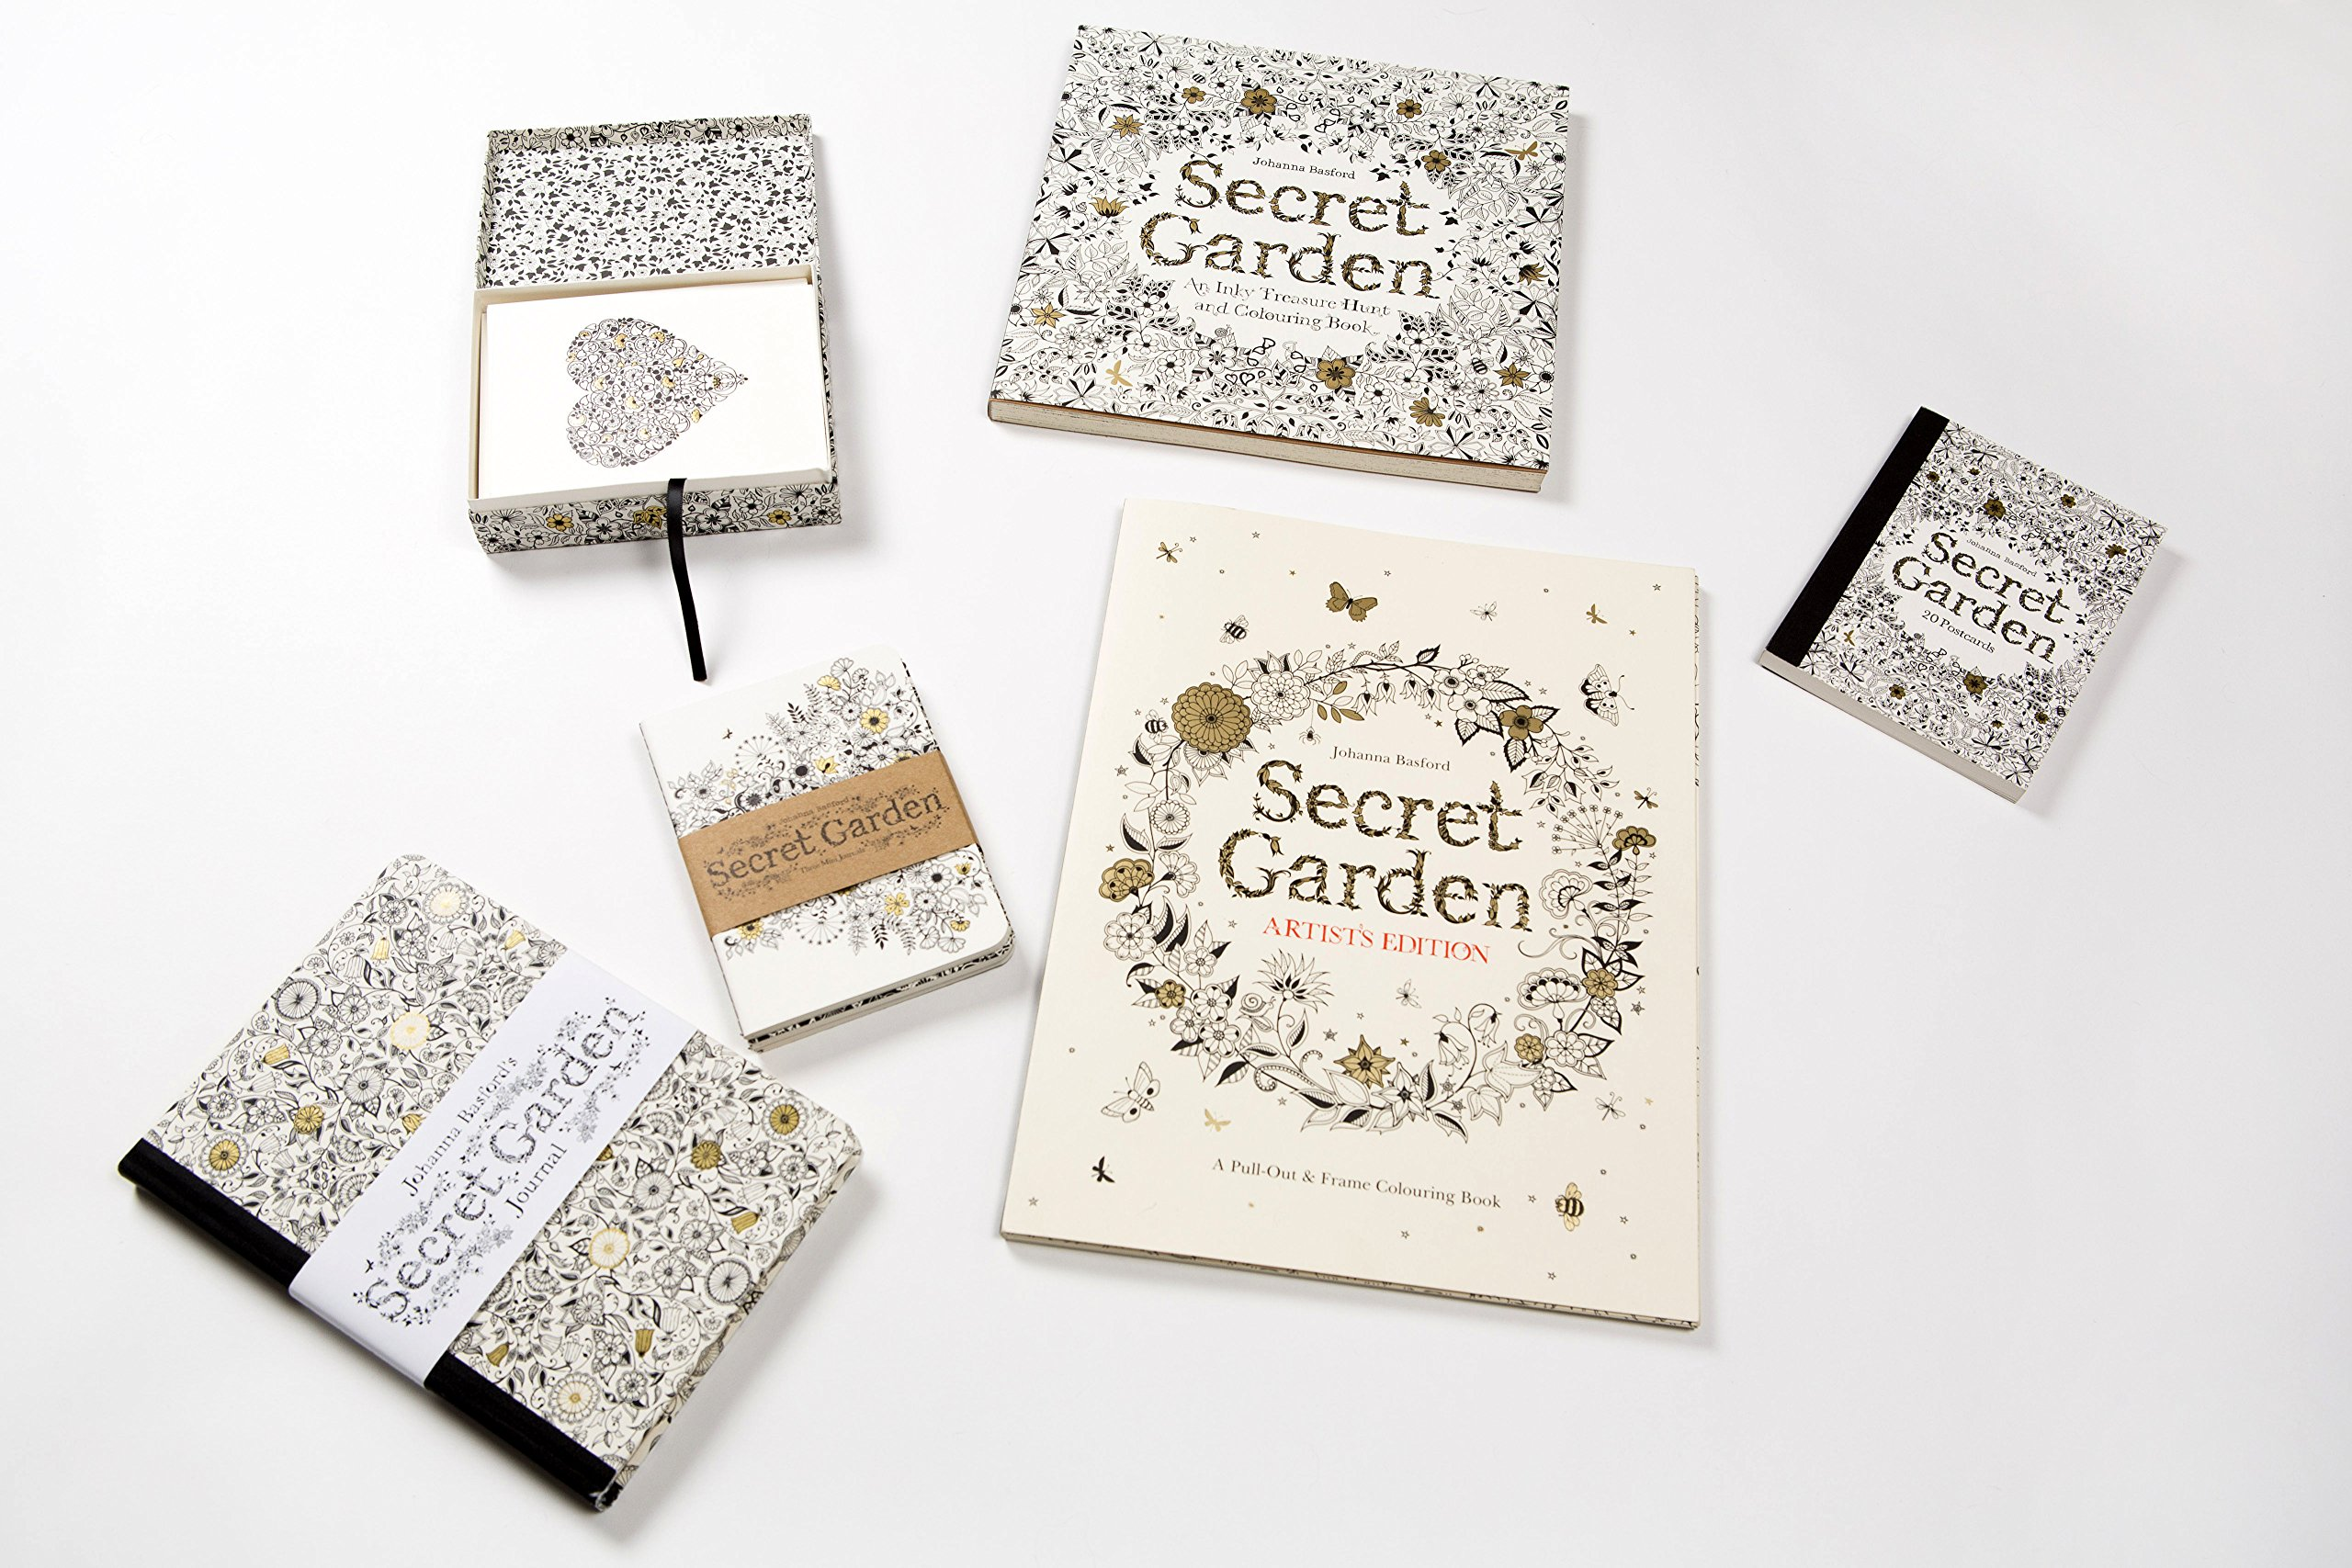 Secret Garden Artists Edition A Pull Out And Frame Colouring Book Amazoncouk Johanna Basford 9781780677309 Books